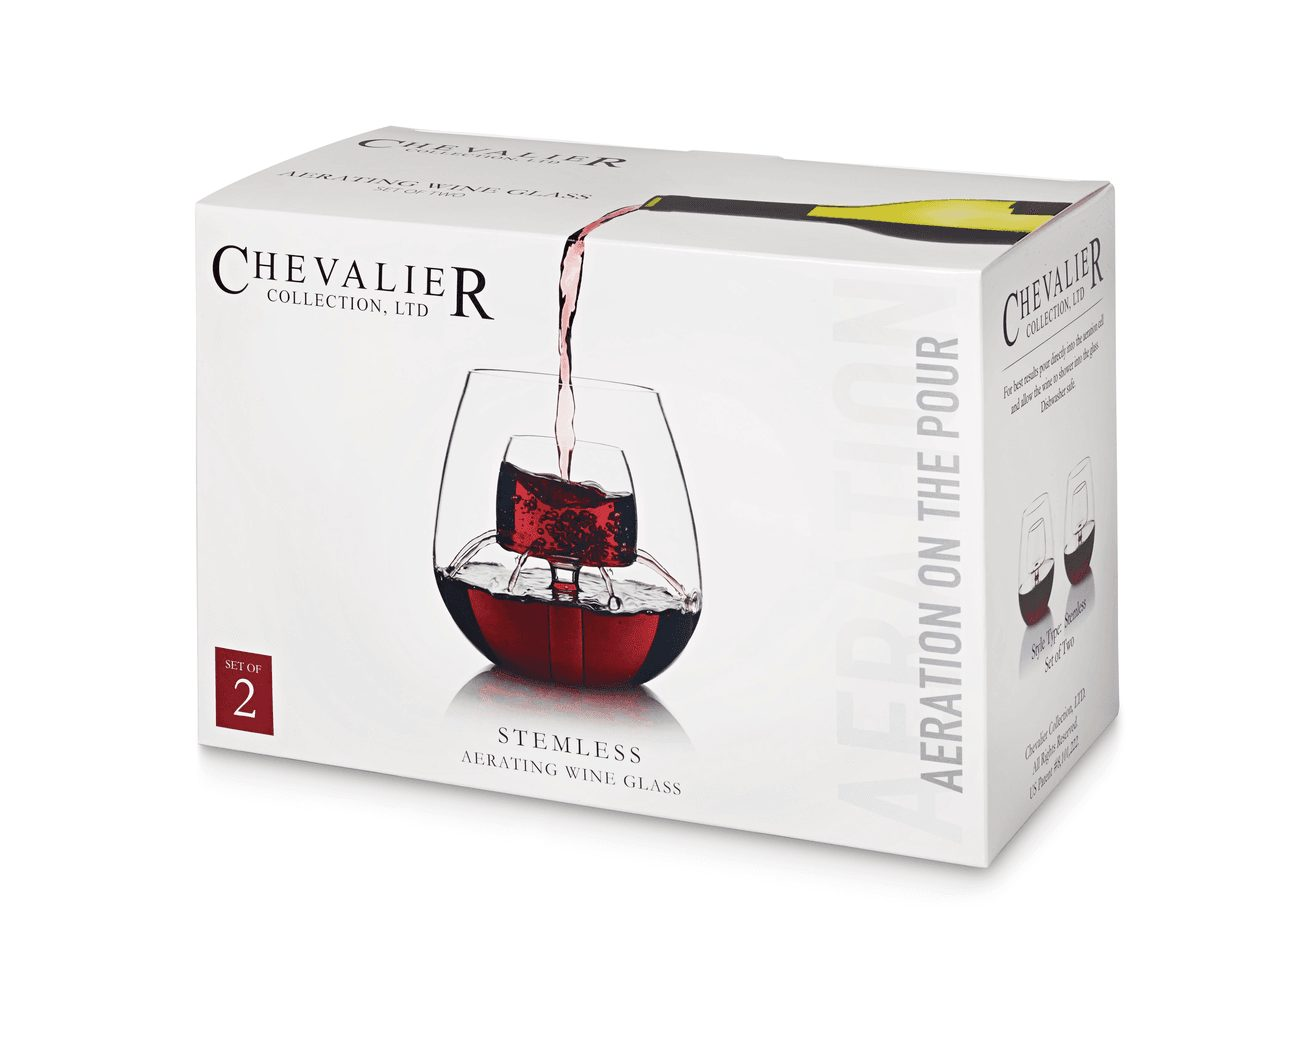 Chevalier Stemless Aerating Wine Glass (Set of 2)